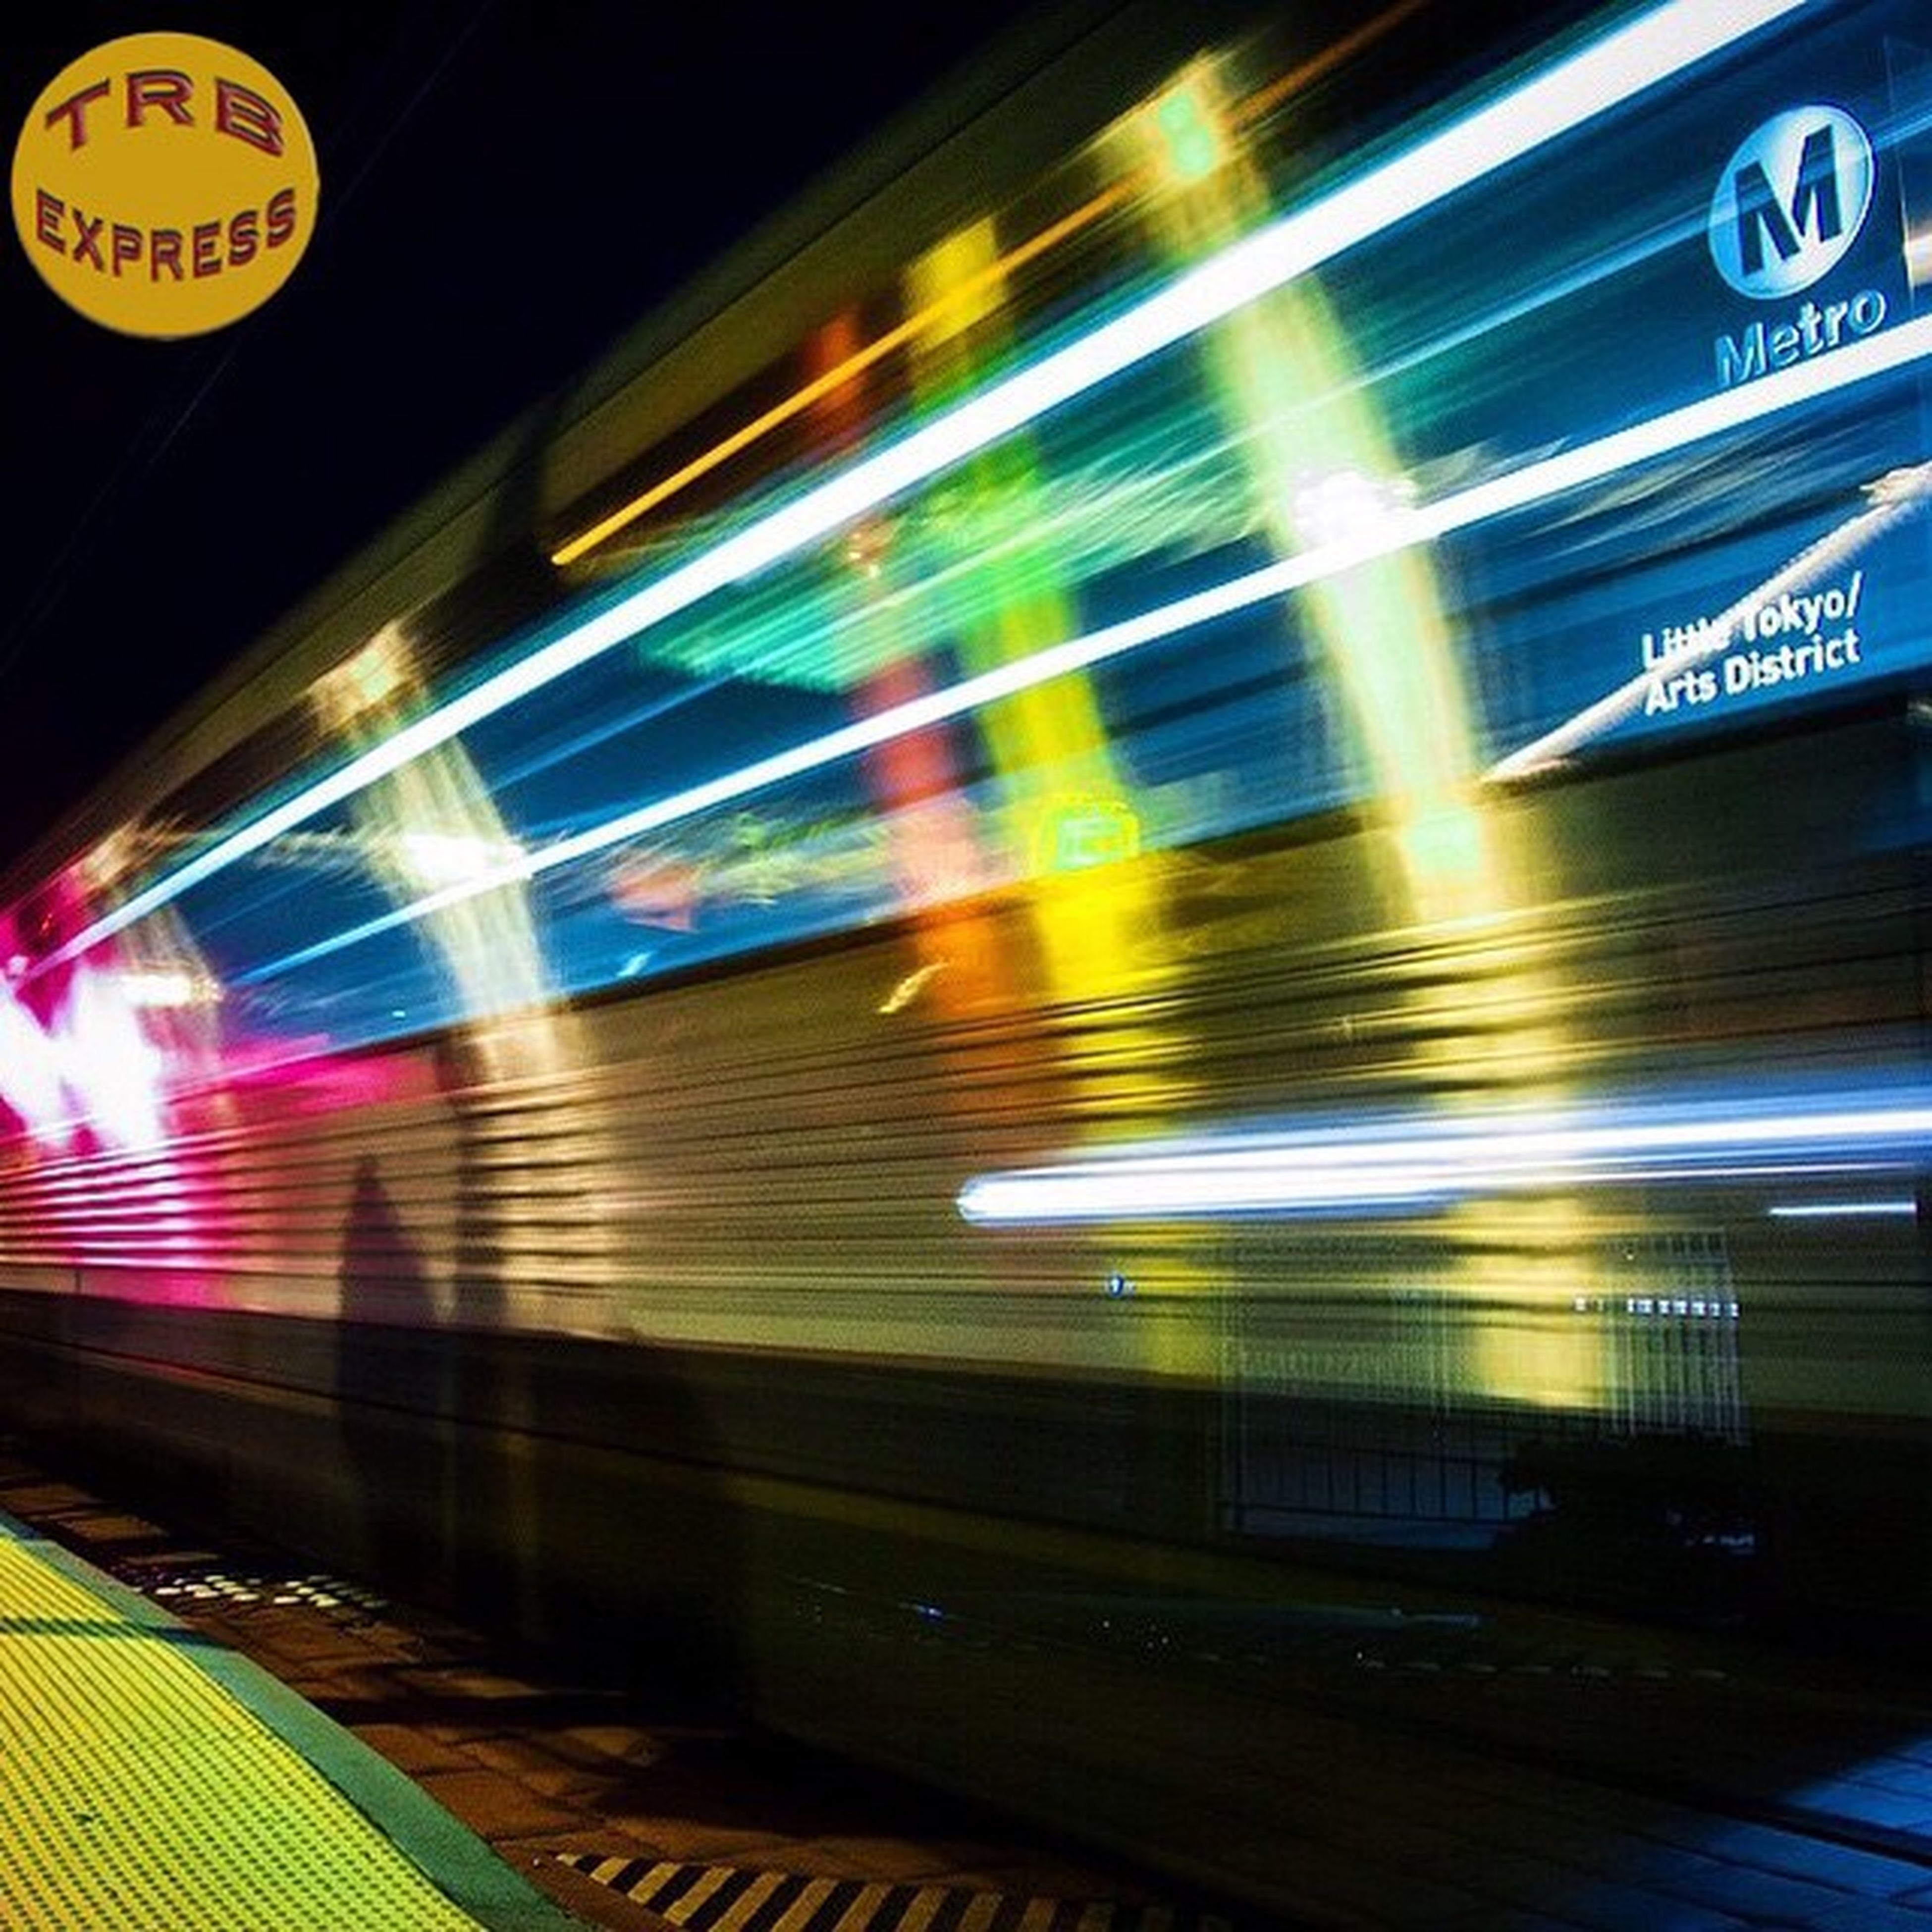 illuminated, night, transportation, long exposure, text, speed, blurred motion, light trail, motion, multi colored, western script, communication, road, city, information sign, street, red, mode of transport, guidance, built structure